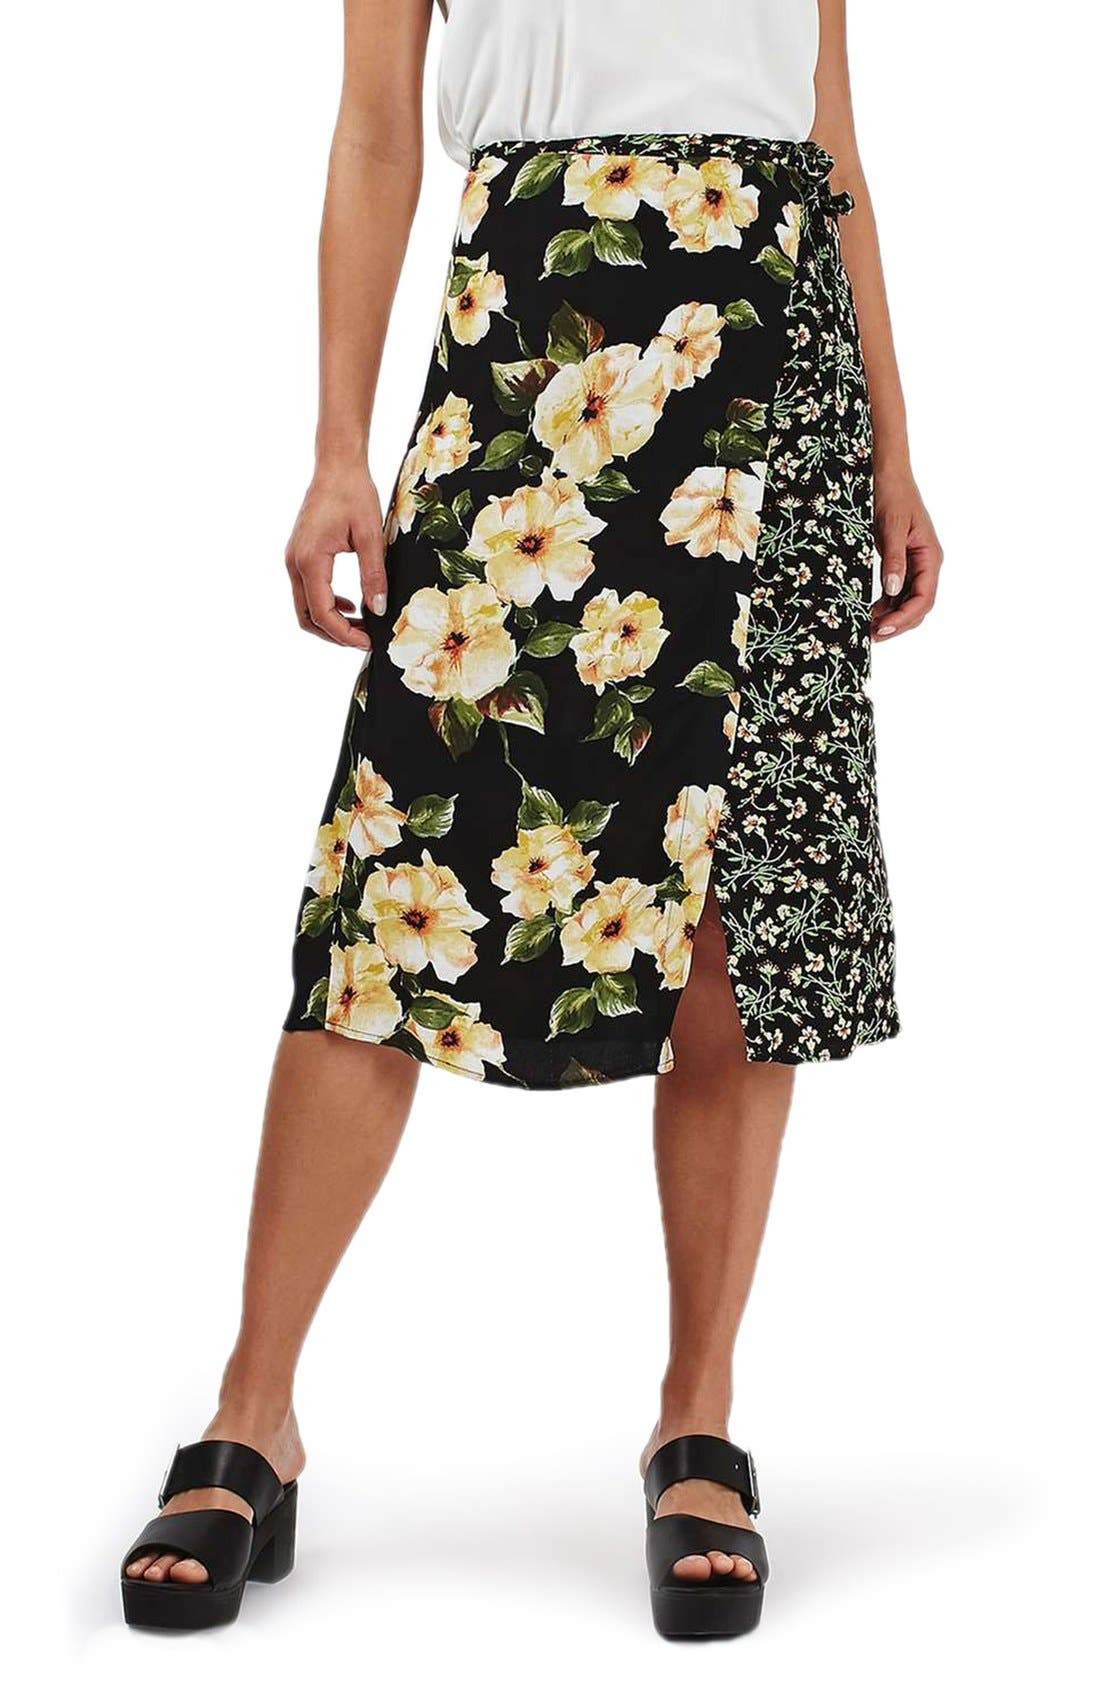 Alternate Image 1 Selected - Topshop 'Busy Garden' Floral Print Wrap Midi Skirt